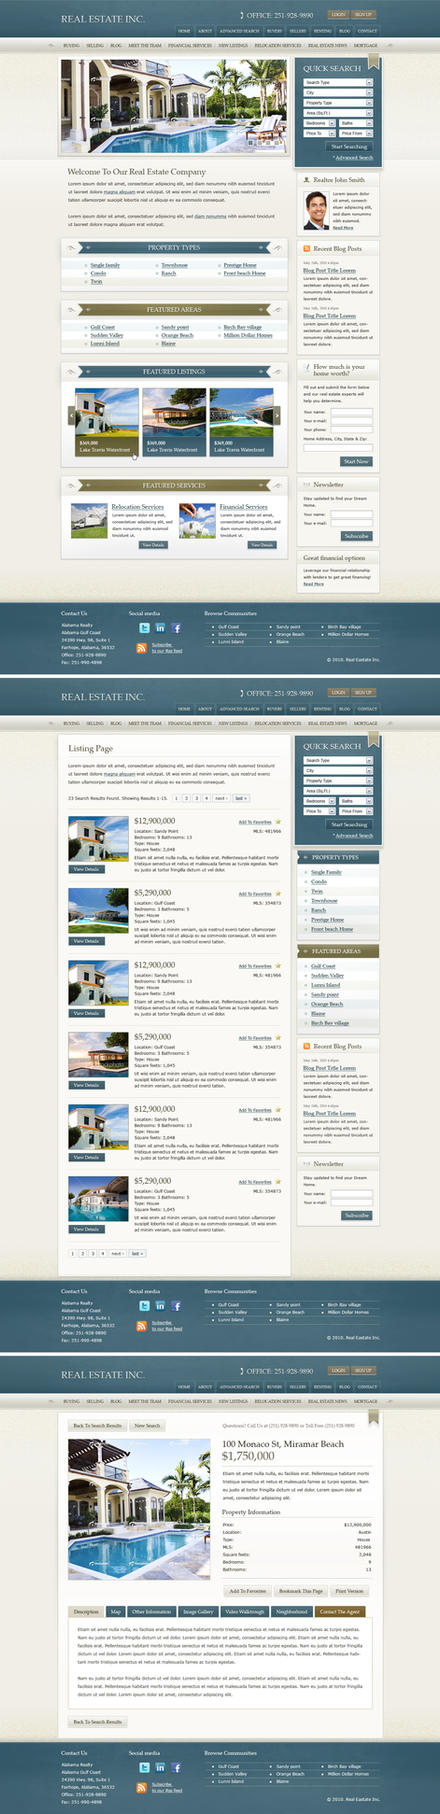 Real Estate Theme by c-quence